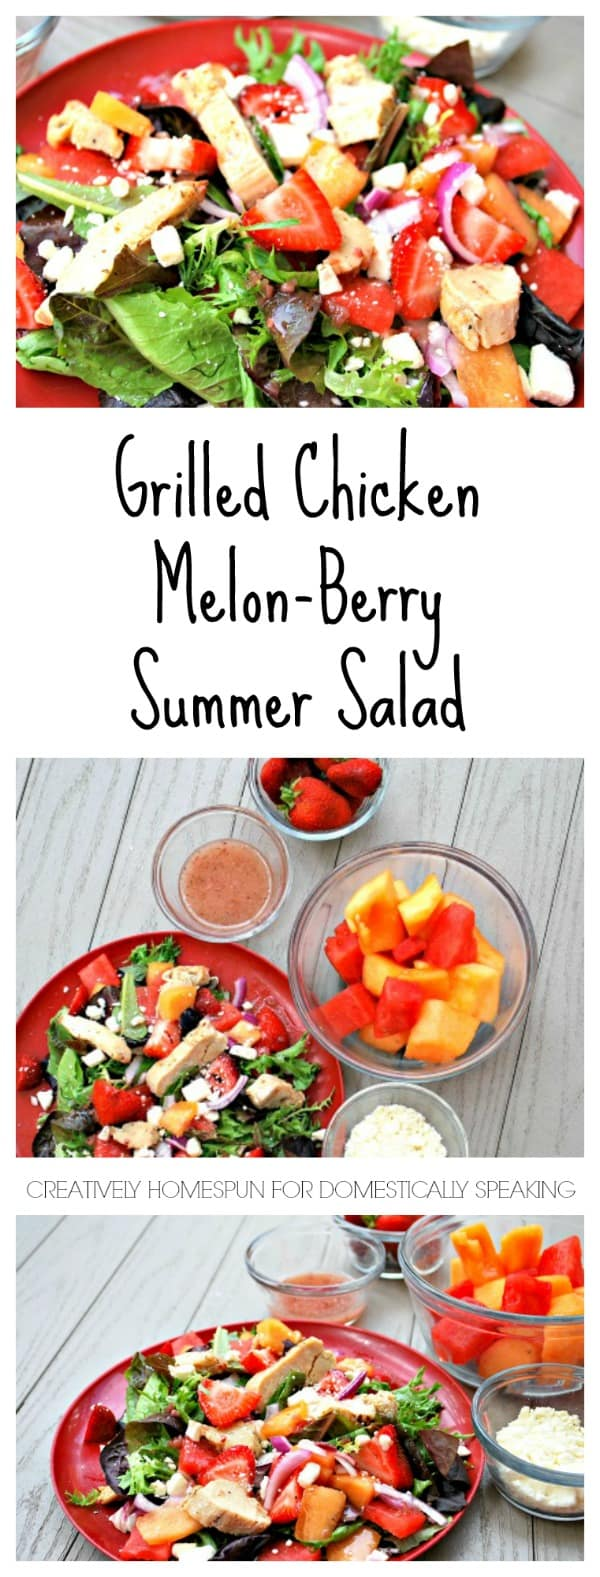 Grilled Chicken Melon, Berry Summer Salad - so colorful and delicious during the heat of summer - perfect for lunch or dinner